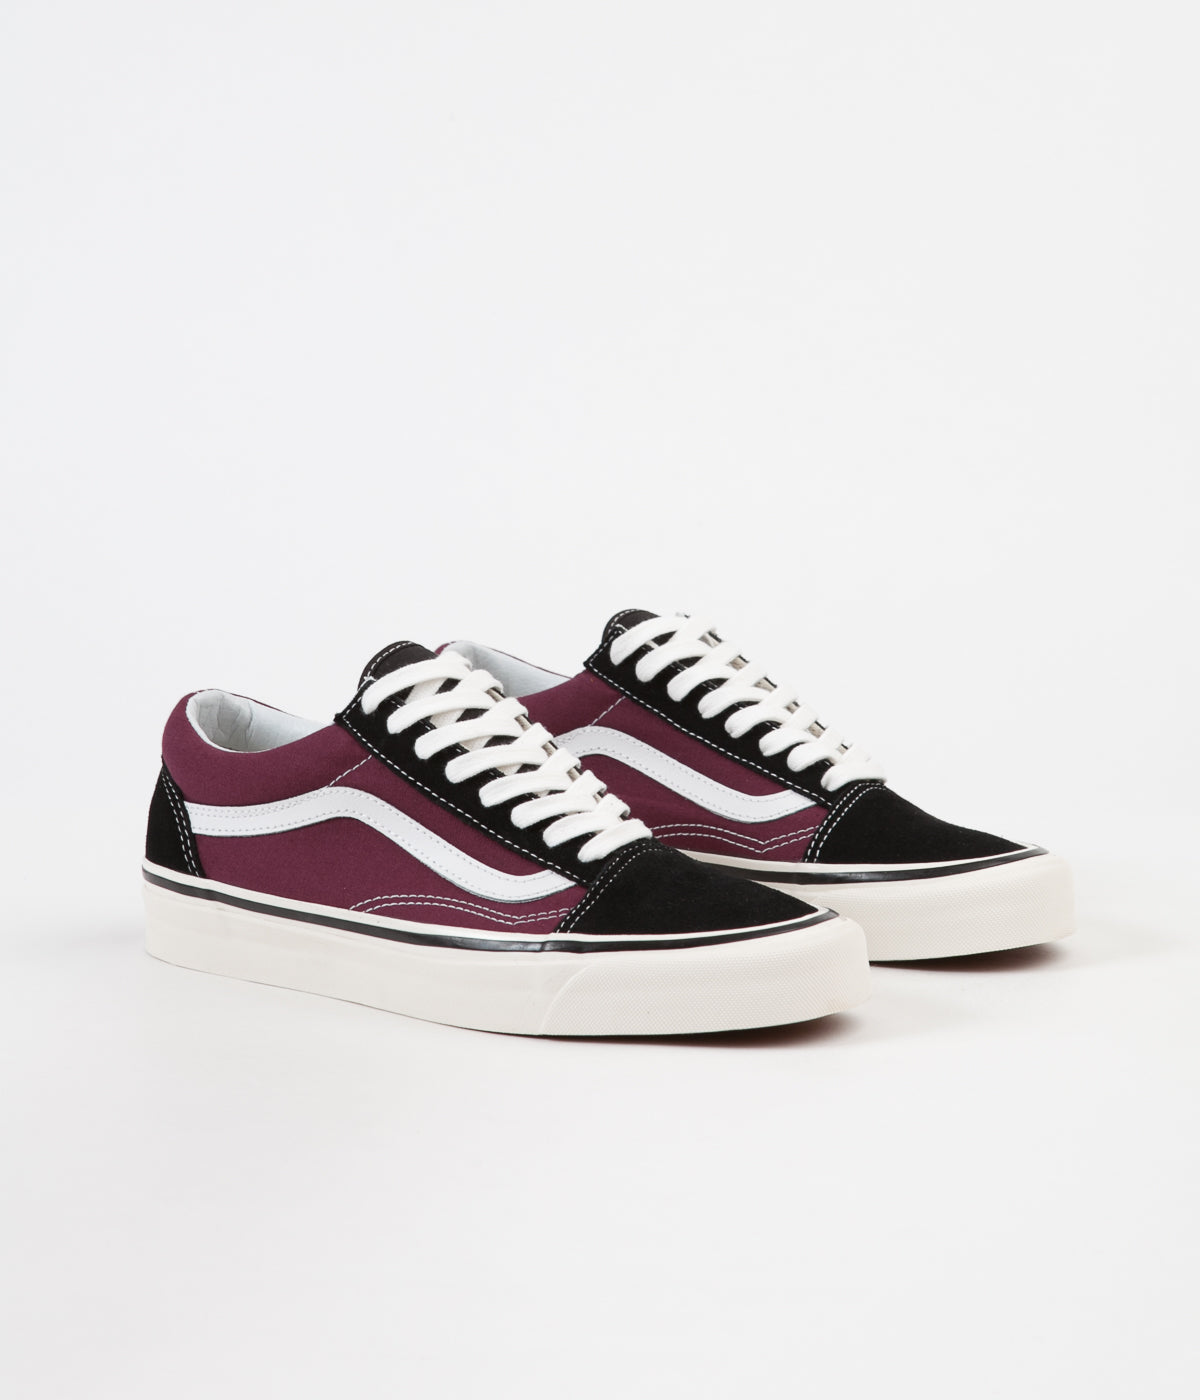 eb3d7a43f8 ... Vans Old Skool 36 DX Anaheim Factory Shoes - Black   OG Burgundy ...